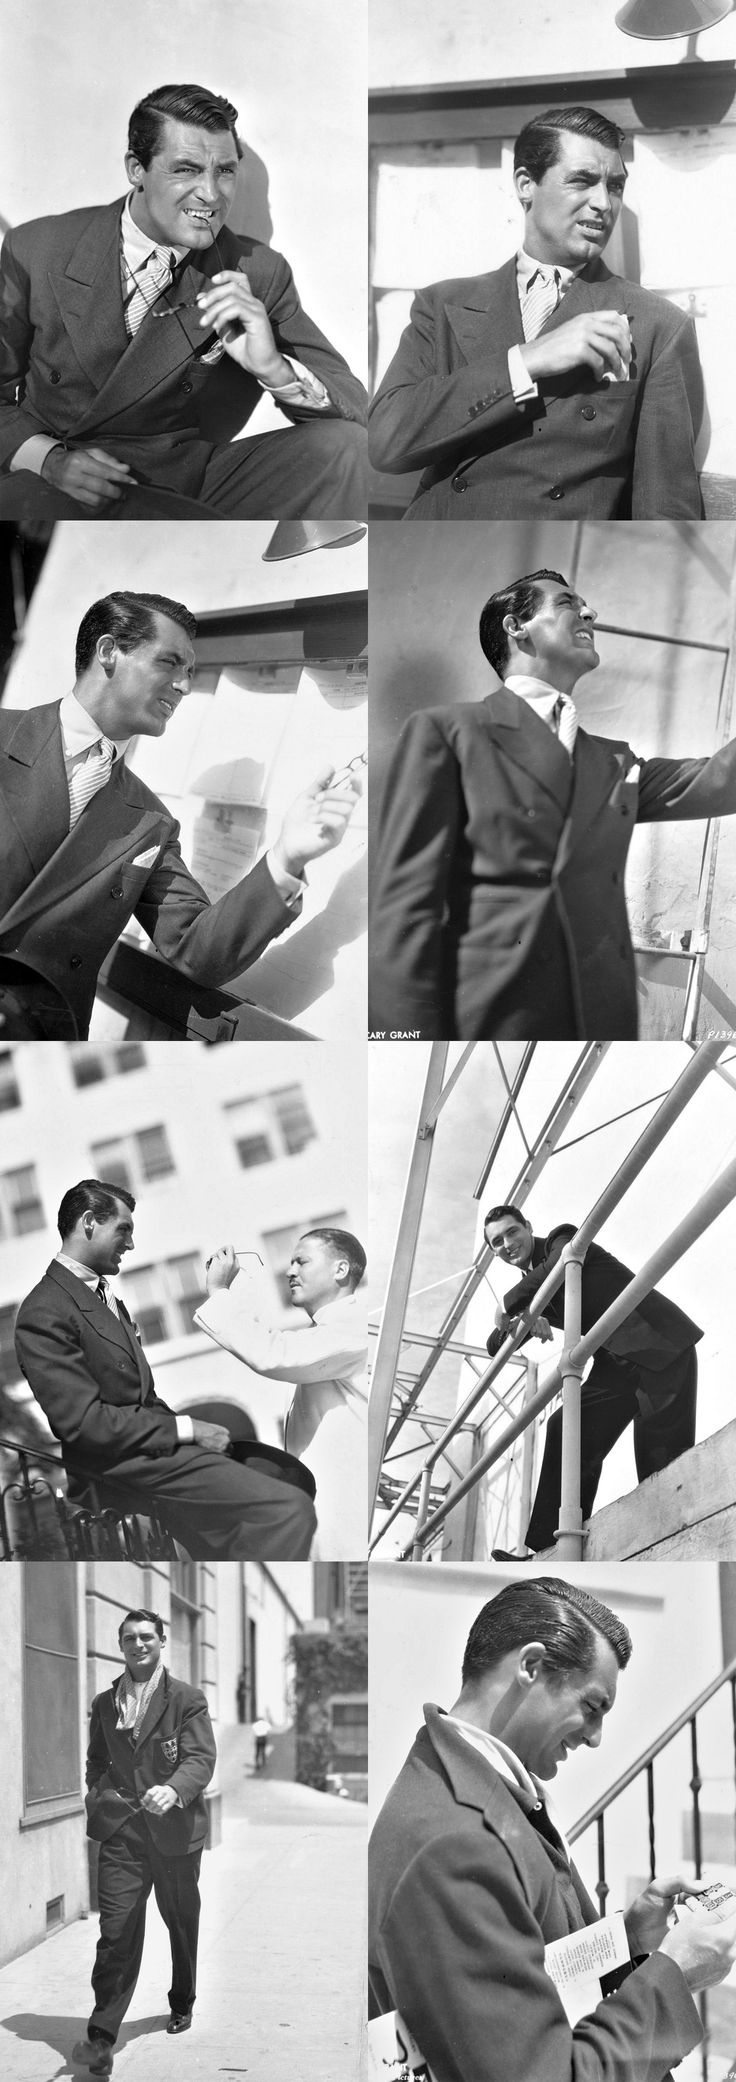 Cary Grant photo-shoot on the Paramount Studios lot, c. early 1935